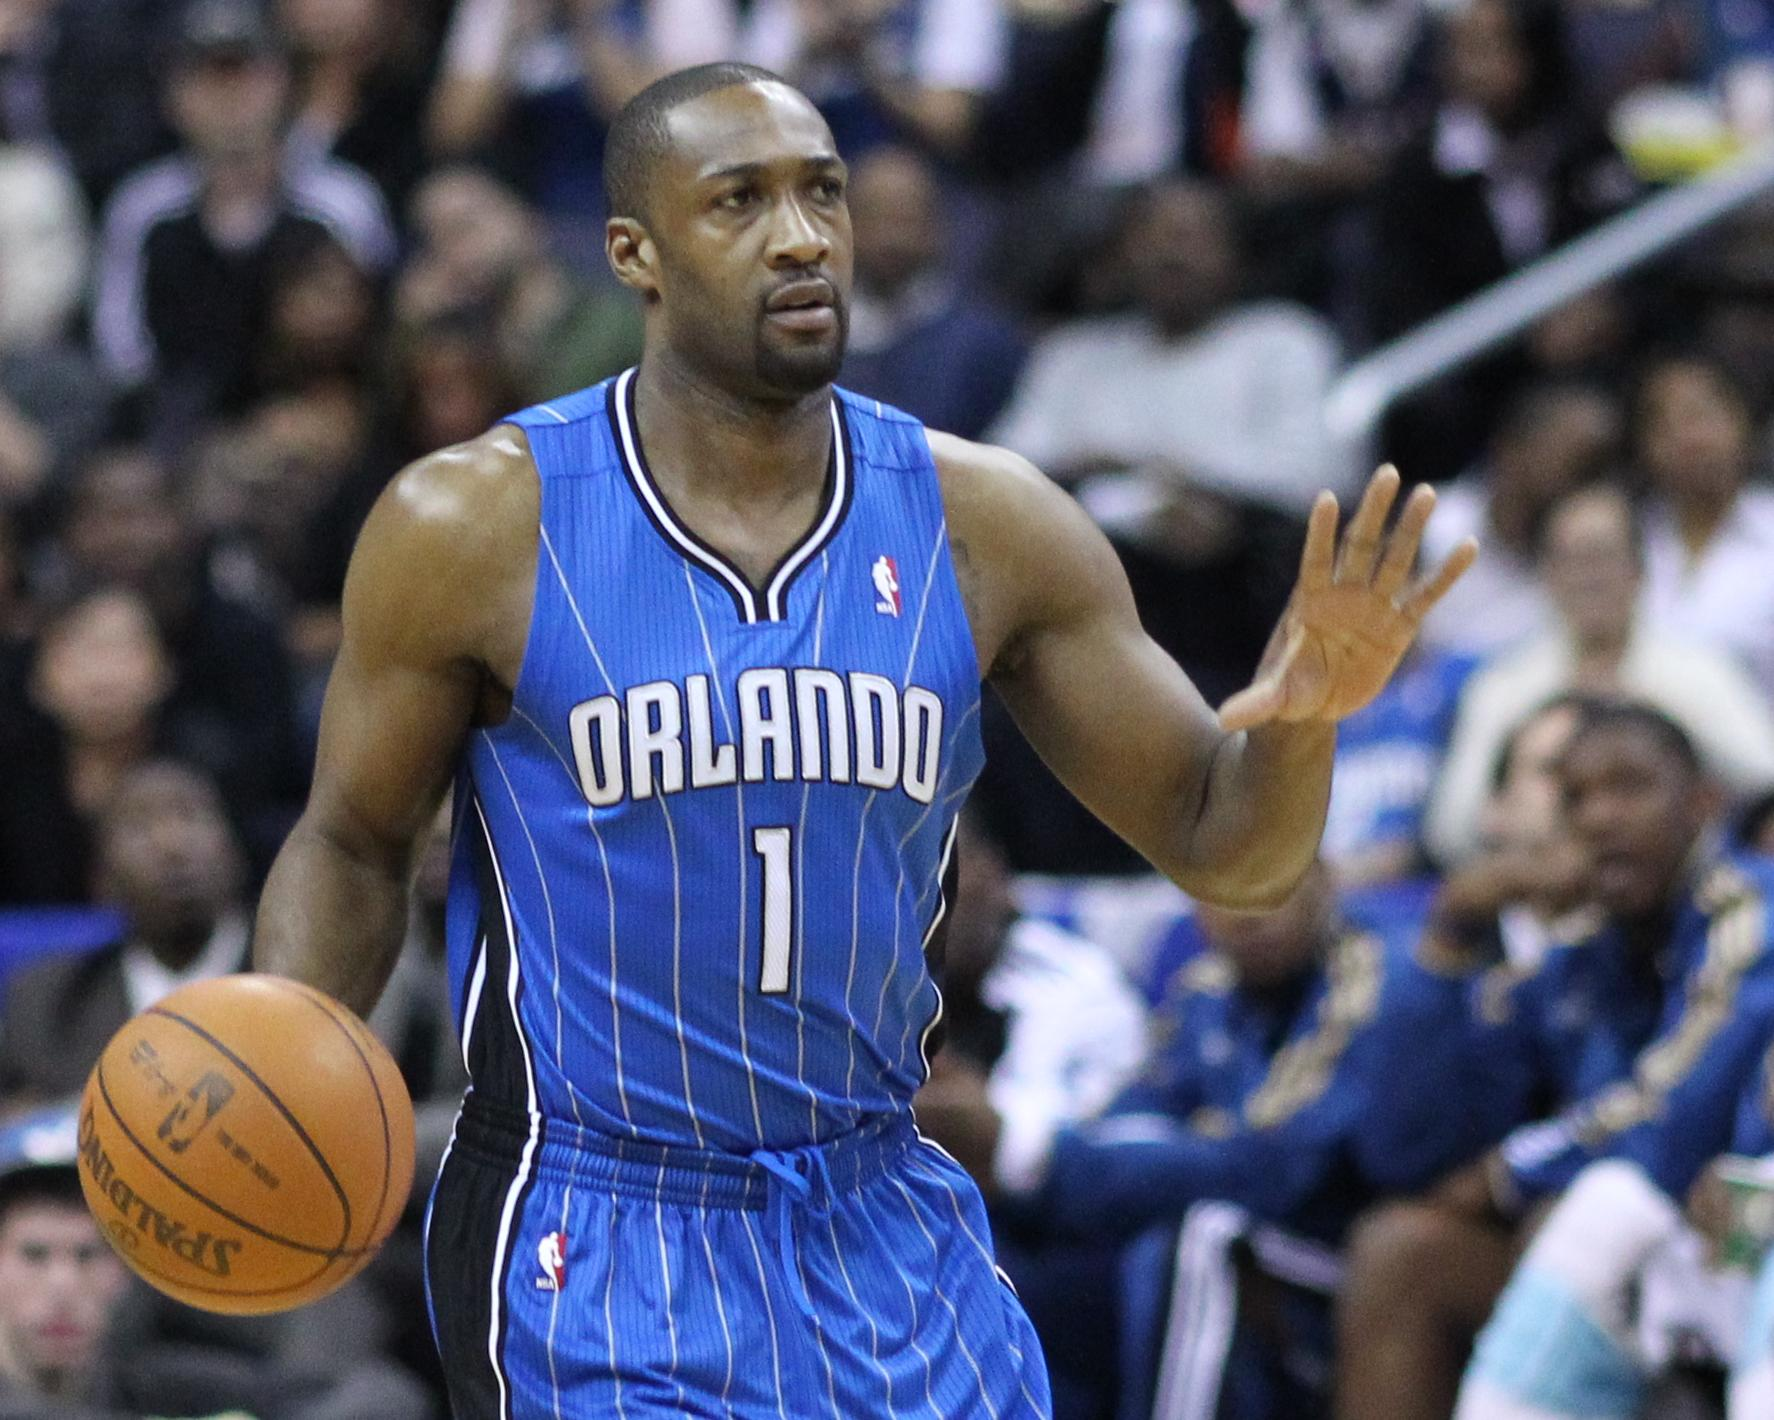 Gilbert Arenas' Former Assistant Convicted of Stealing More Than $2 Million From Him